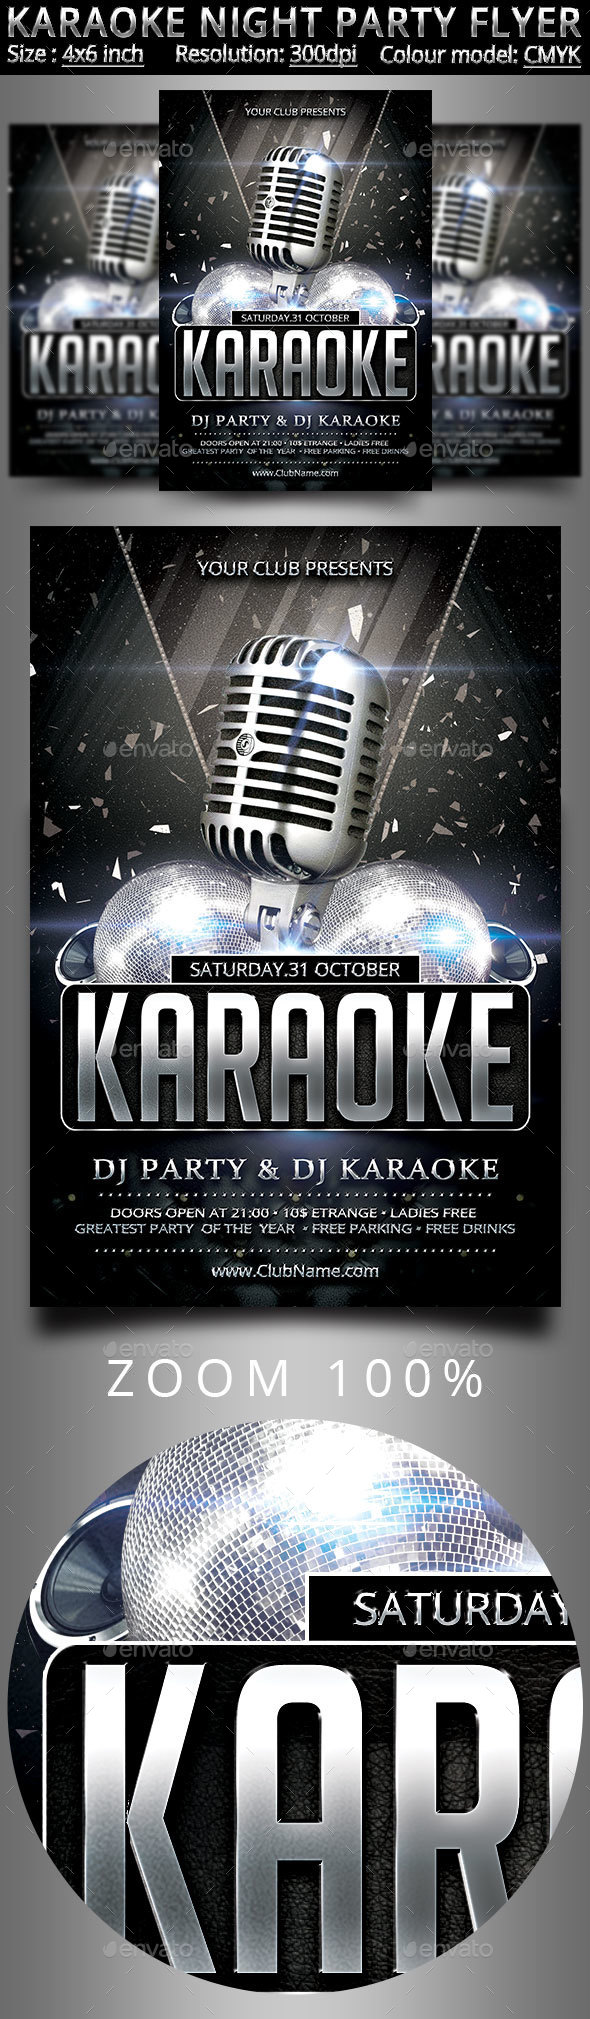 Karaoke Night Party Flyer - Clubs & Parties Events